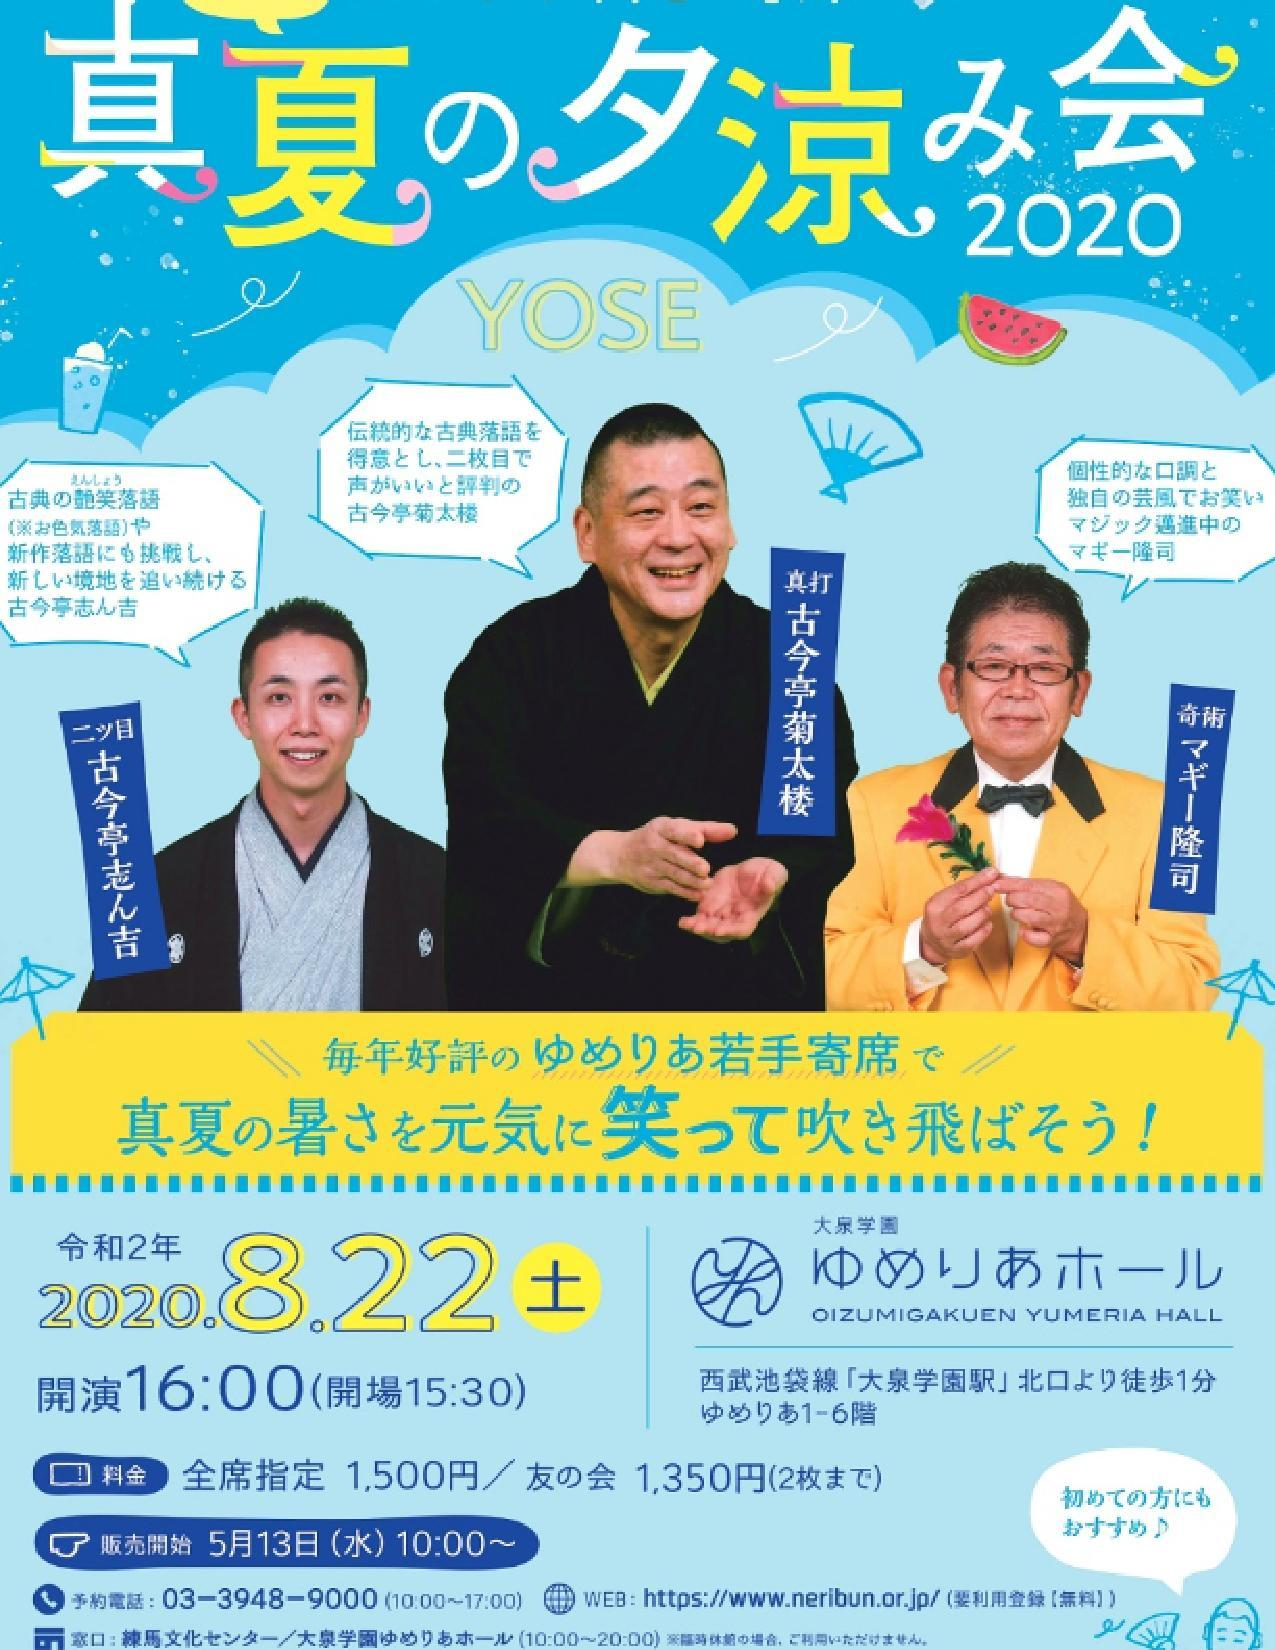 Fair 2020 to enjoy the cool of the evening of the 15th yumeria young person variety hall midsummer